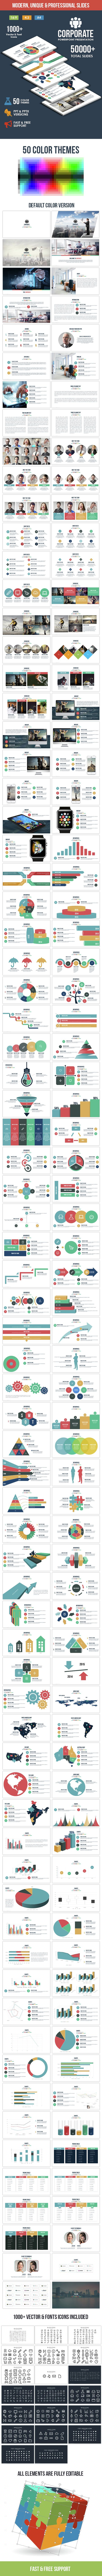 50 best cc research images on pinterest design graphics and icons